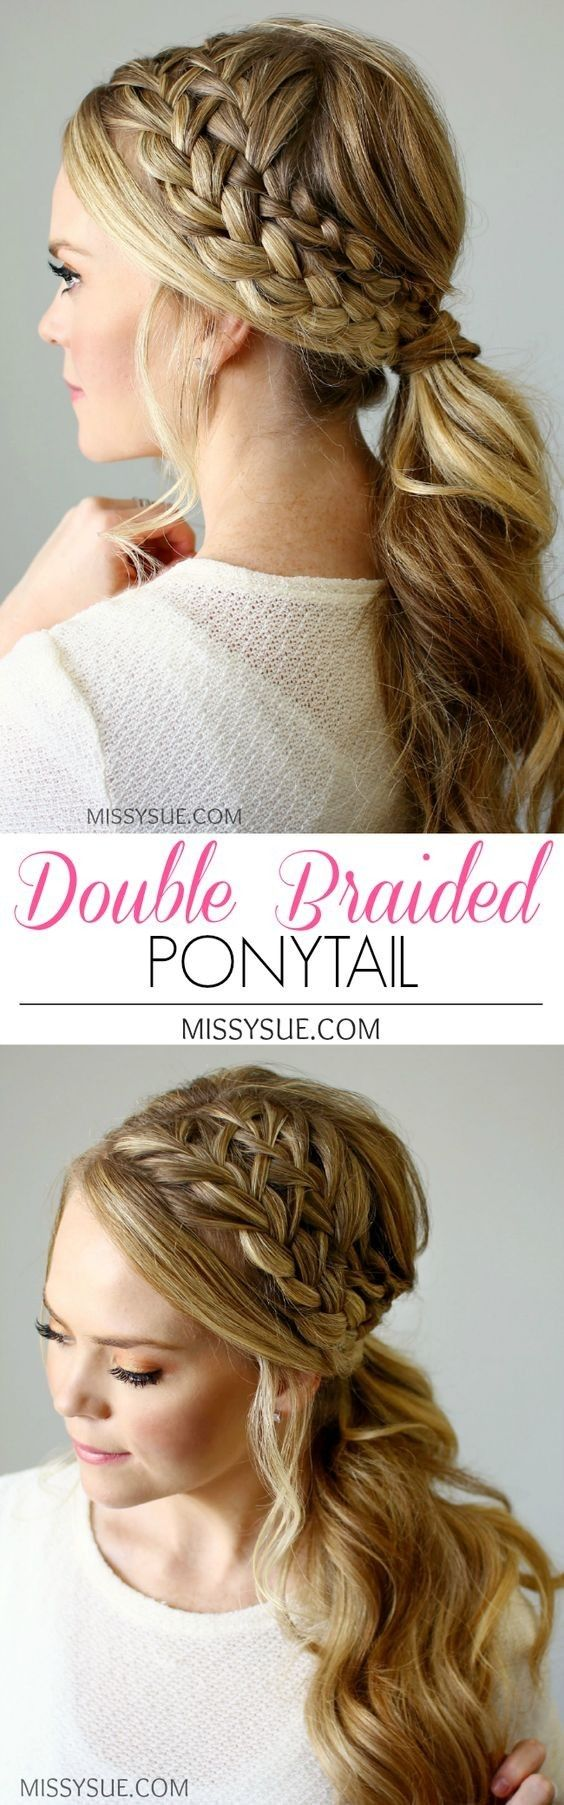 (19) 1000+ ideas about Hairstyles on Pinterest